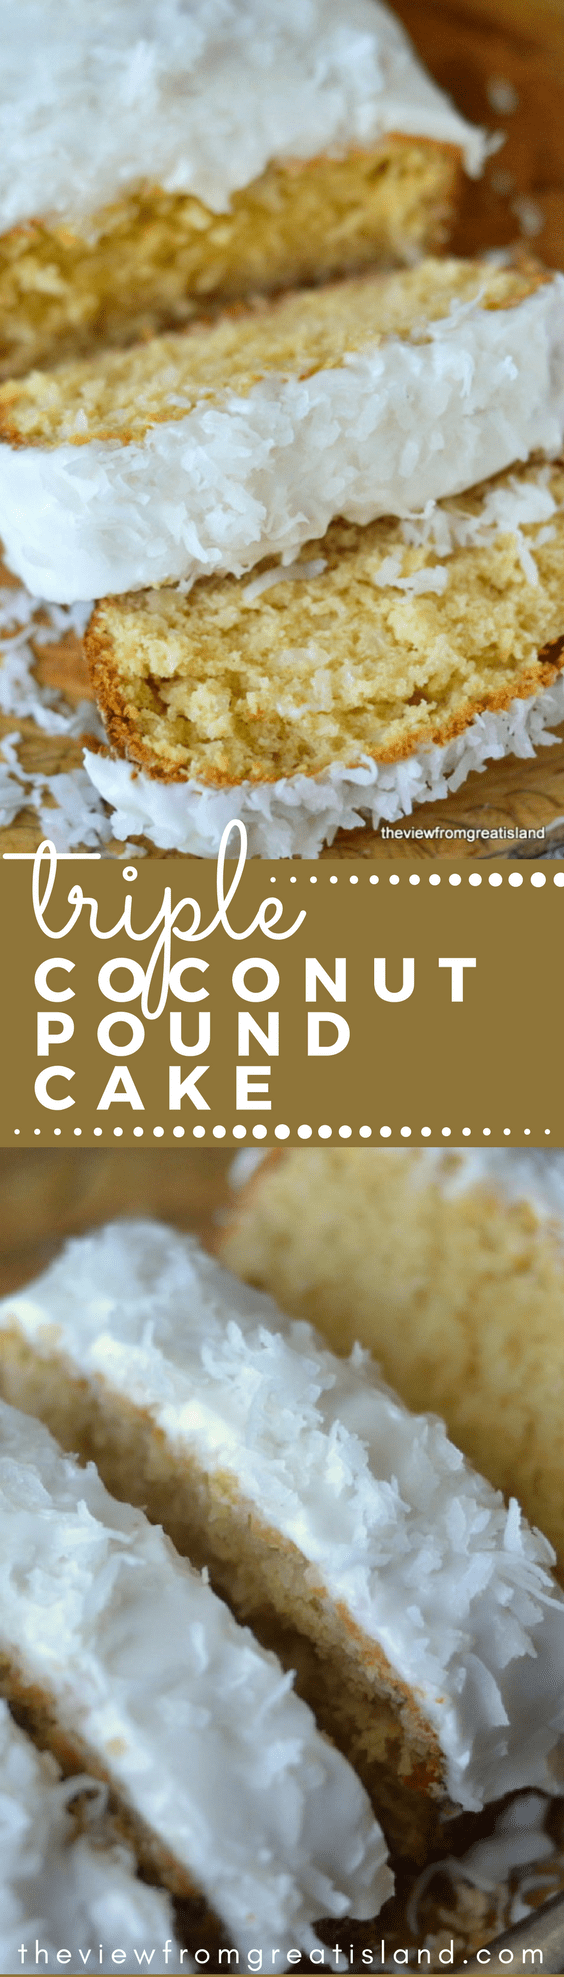 My Triple Coconut Pound Cake is a triple threat coconut experience for serious coconut lovers only!  #cake #coconut #snackcake #vanillacake #baking #loafcake #dessert #poundcake #coconutfrosting